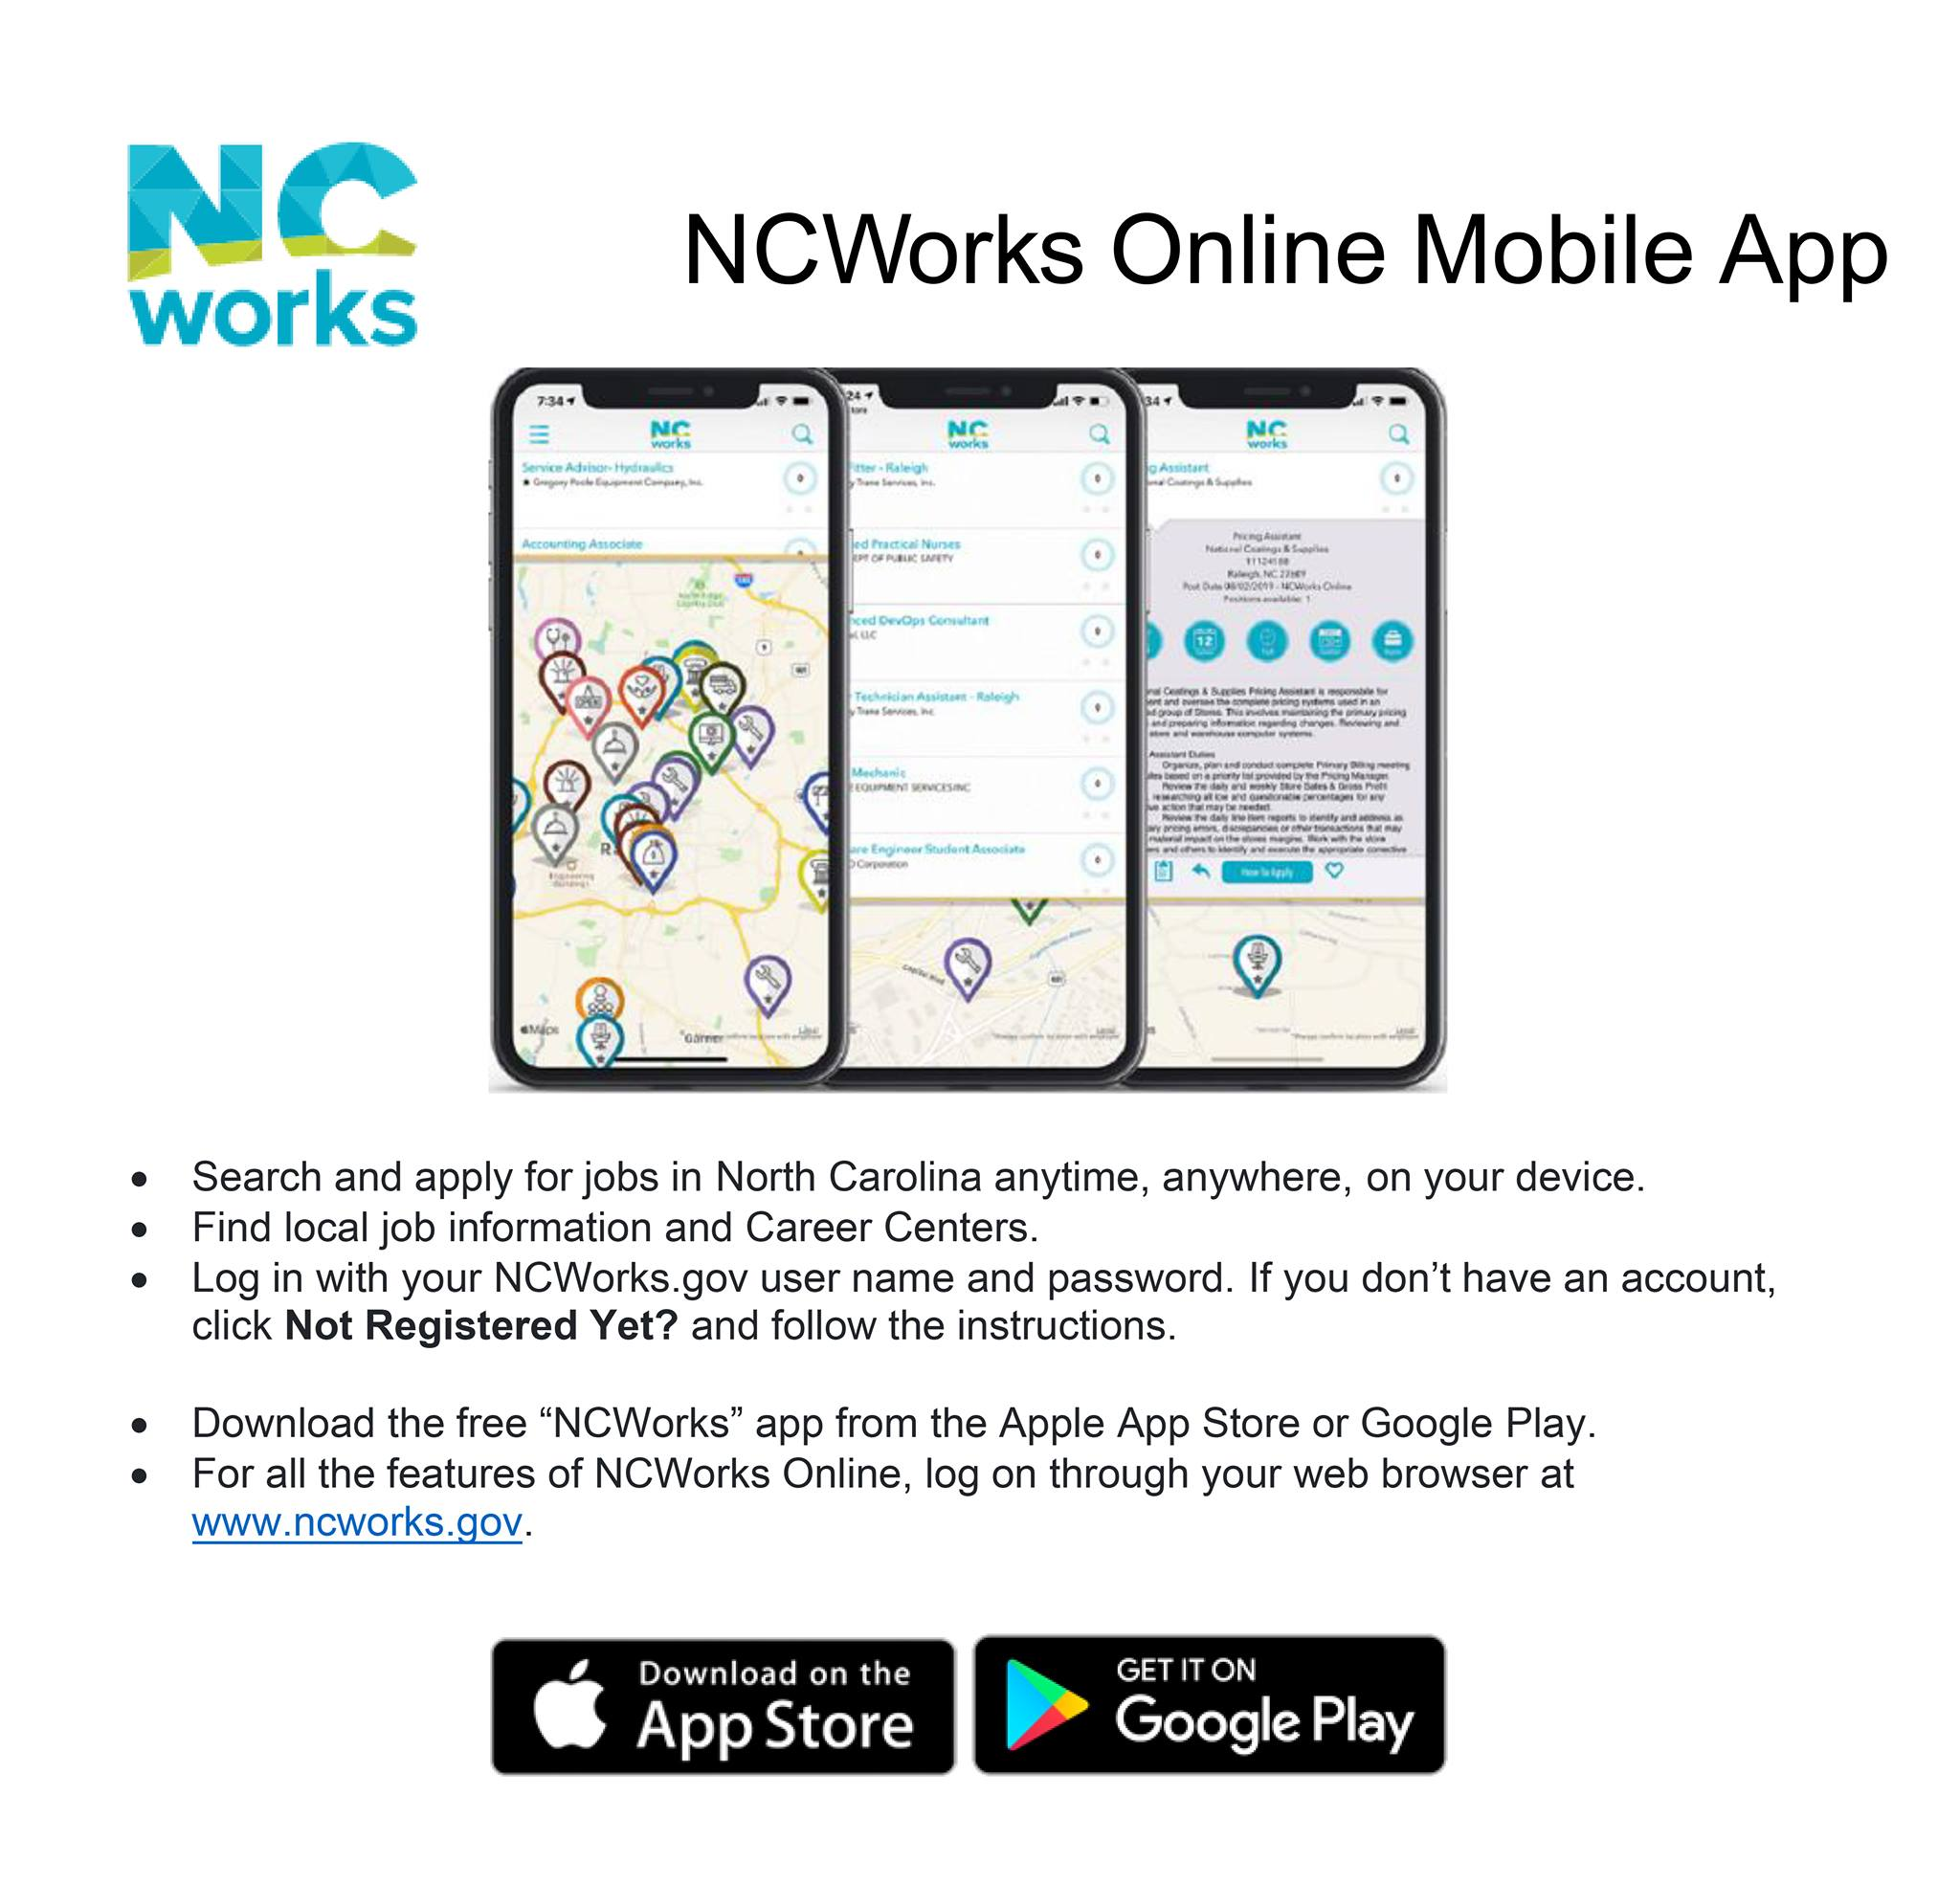 Informational graphic with text about NC Works App